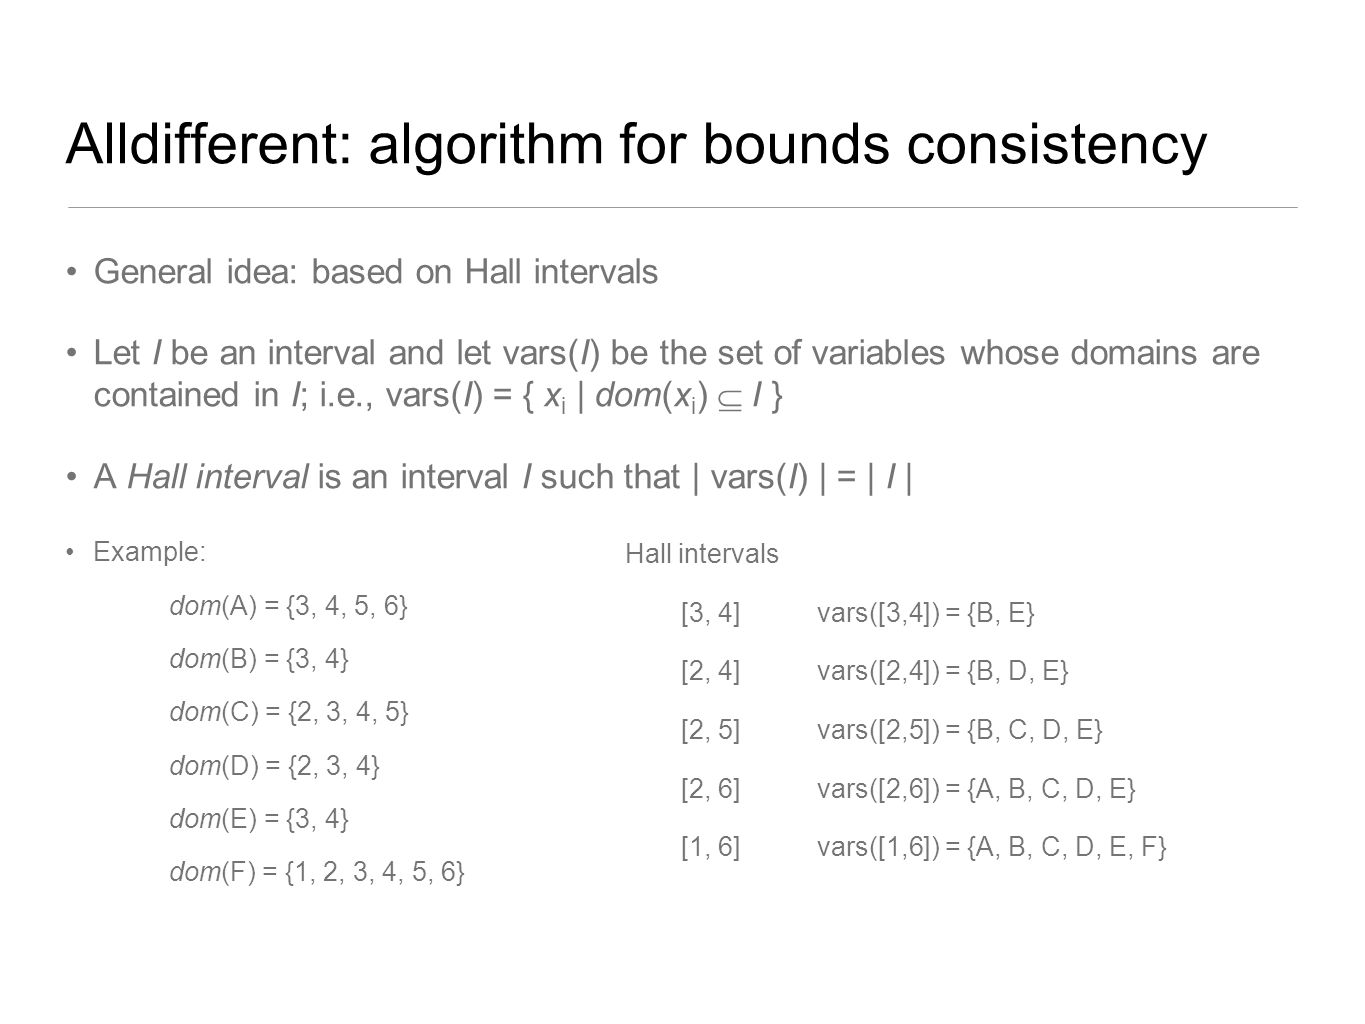 Alldifferent: algorithm for bounds consistency General idea: based on Hall intervals Let I be an interval and let vars(I) be the set of variables whos